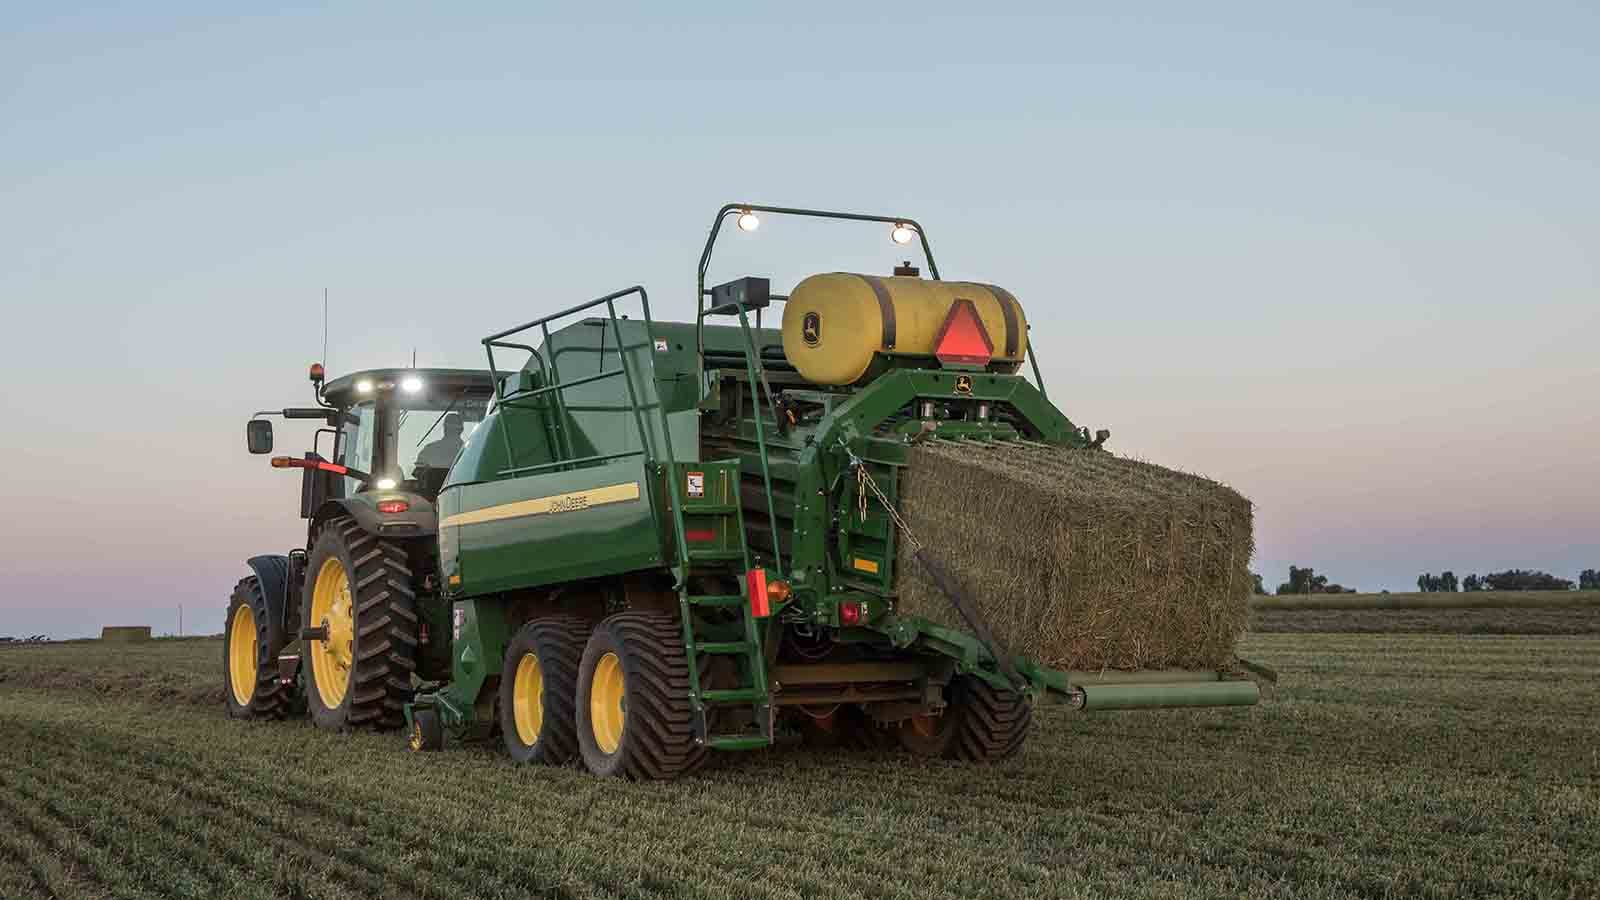 John Deere's new L331 and L341 Large Square Balers feature the MegaWideTM pickup with or without precutter. The L341 baler produces a 3x4-foot bale.